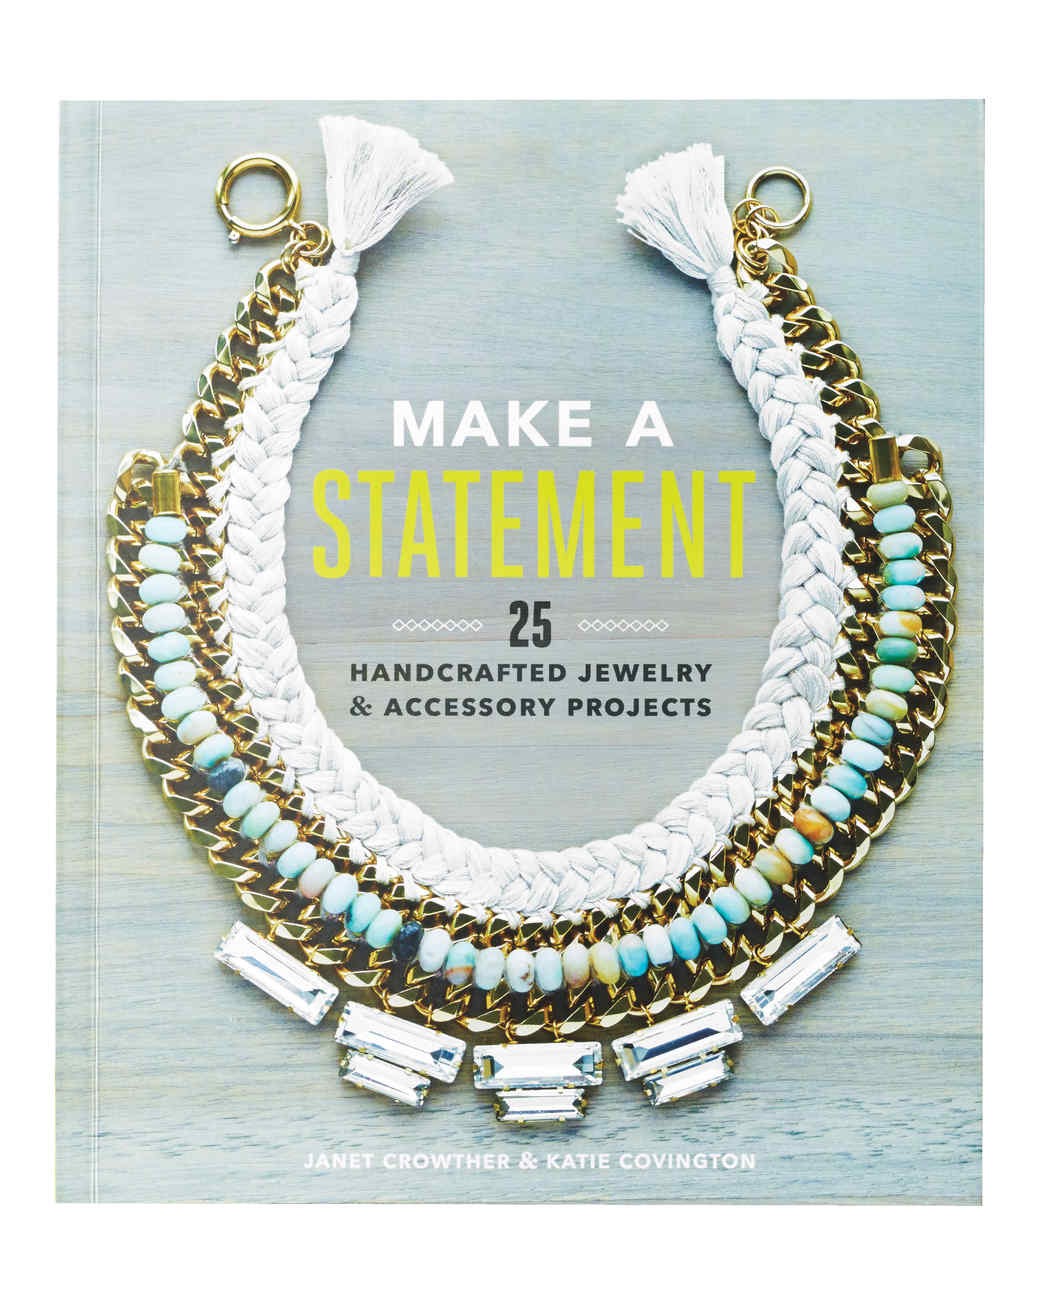 DIY Jewelry: Beaded Necklaces Make the Chicest Links | Martha Stewart